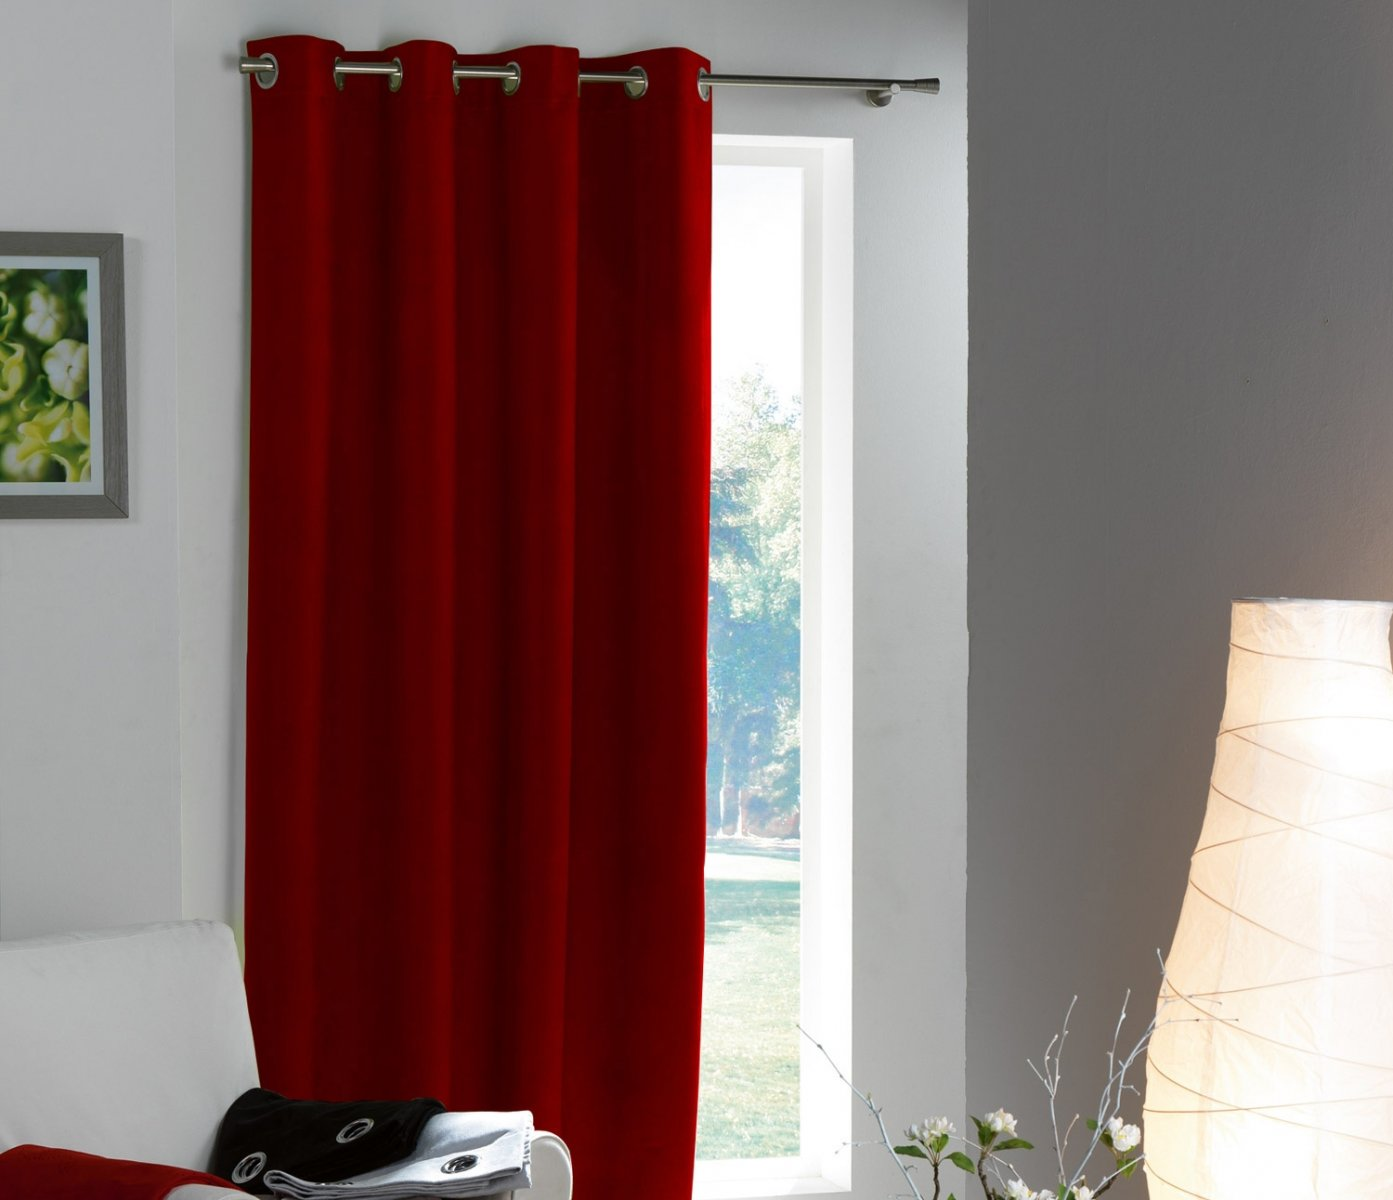 Cortinas para una decoraci n roja decoraci n del hogar for Novedades en decoracion de interiores